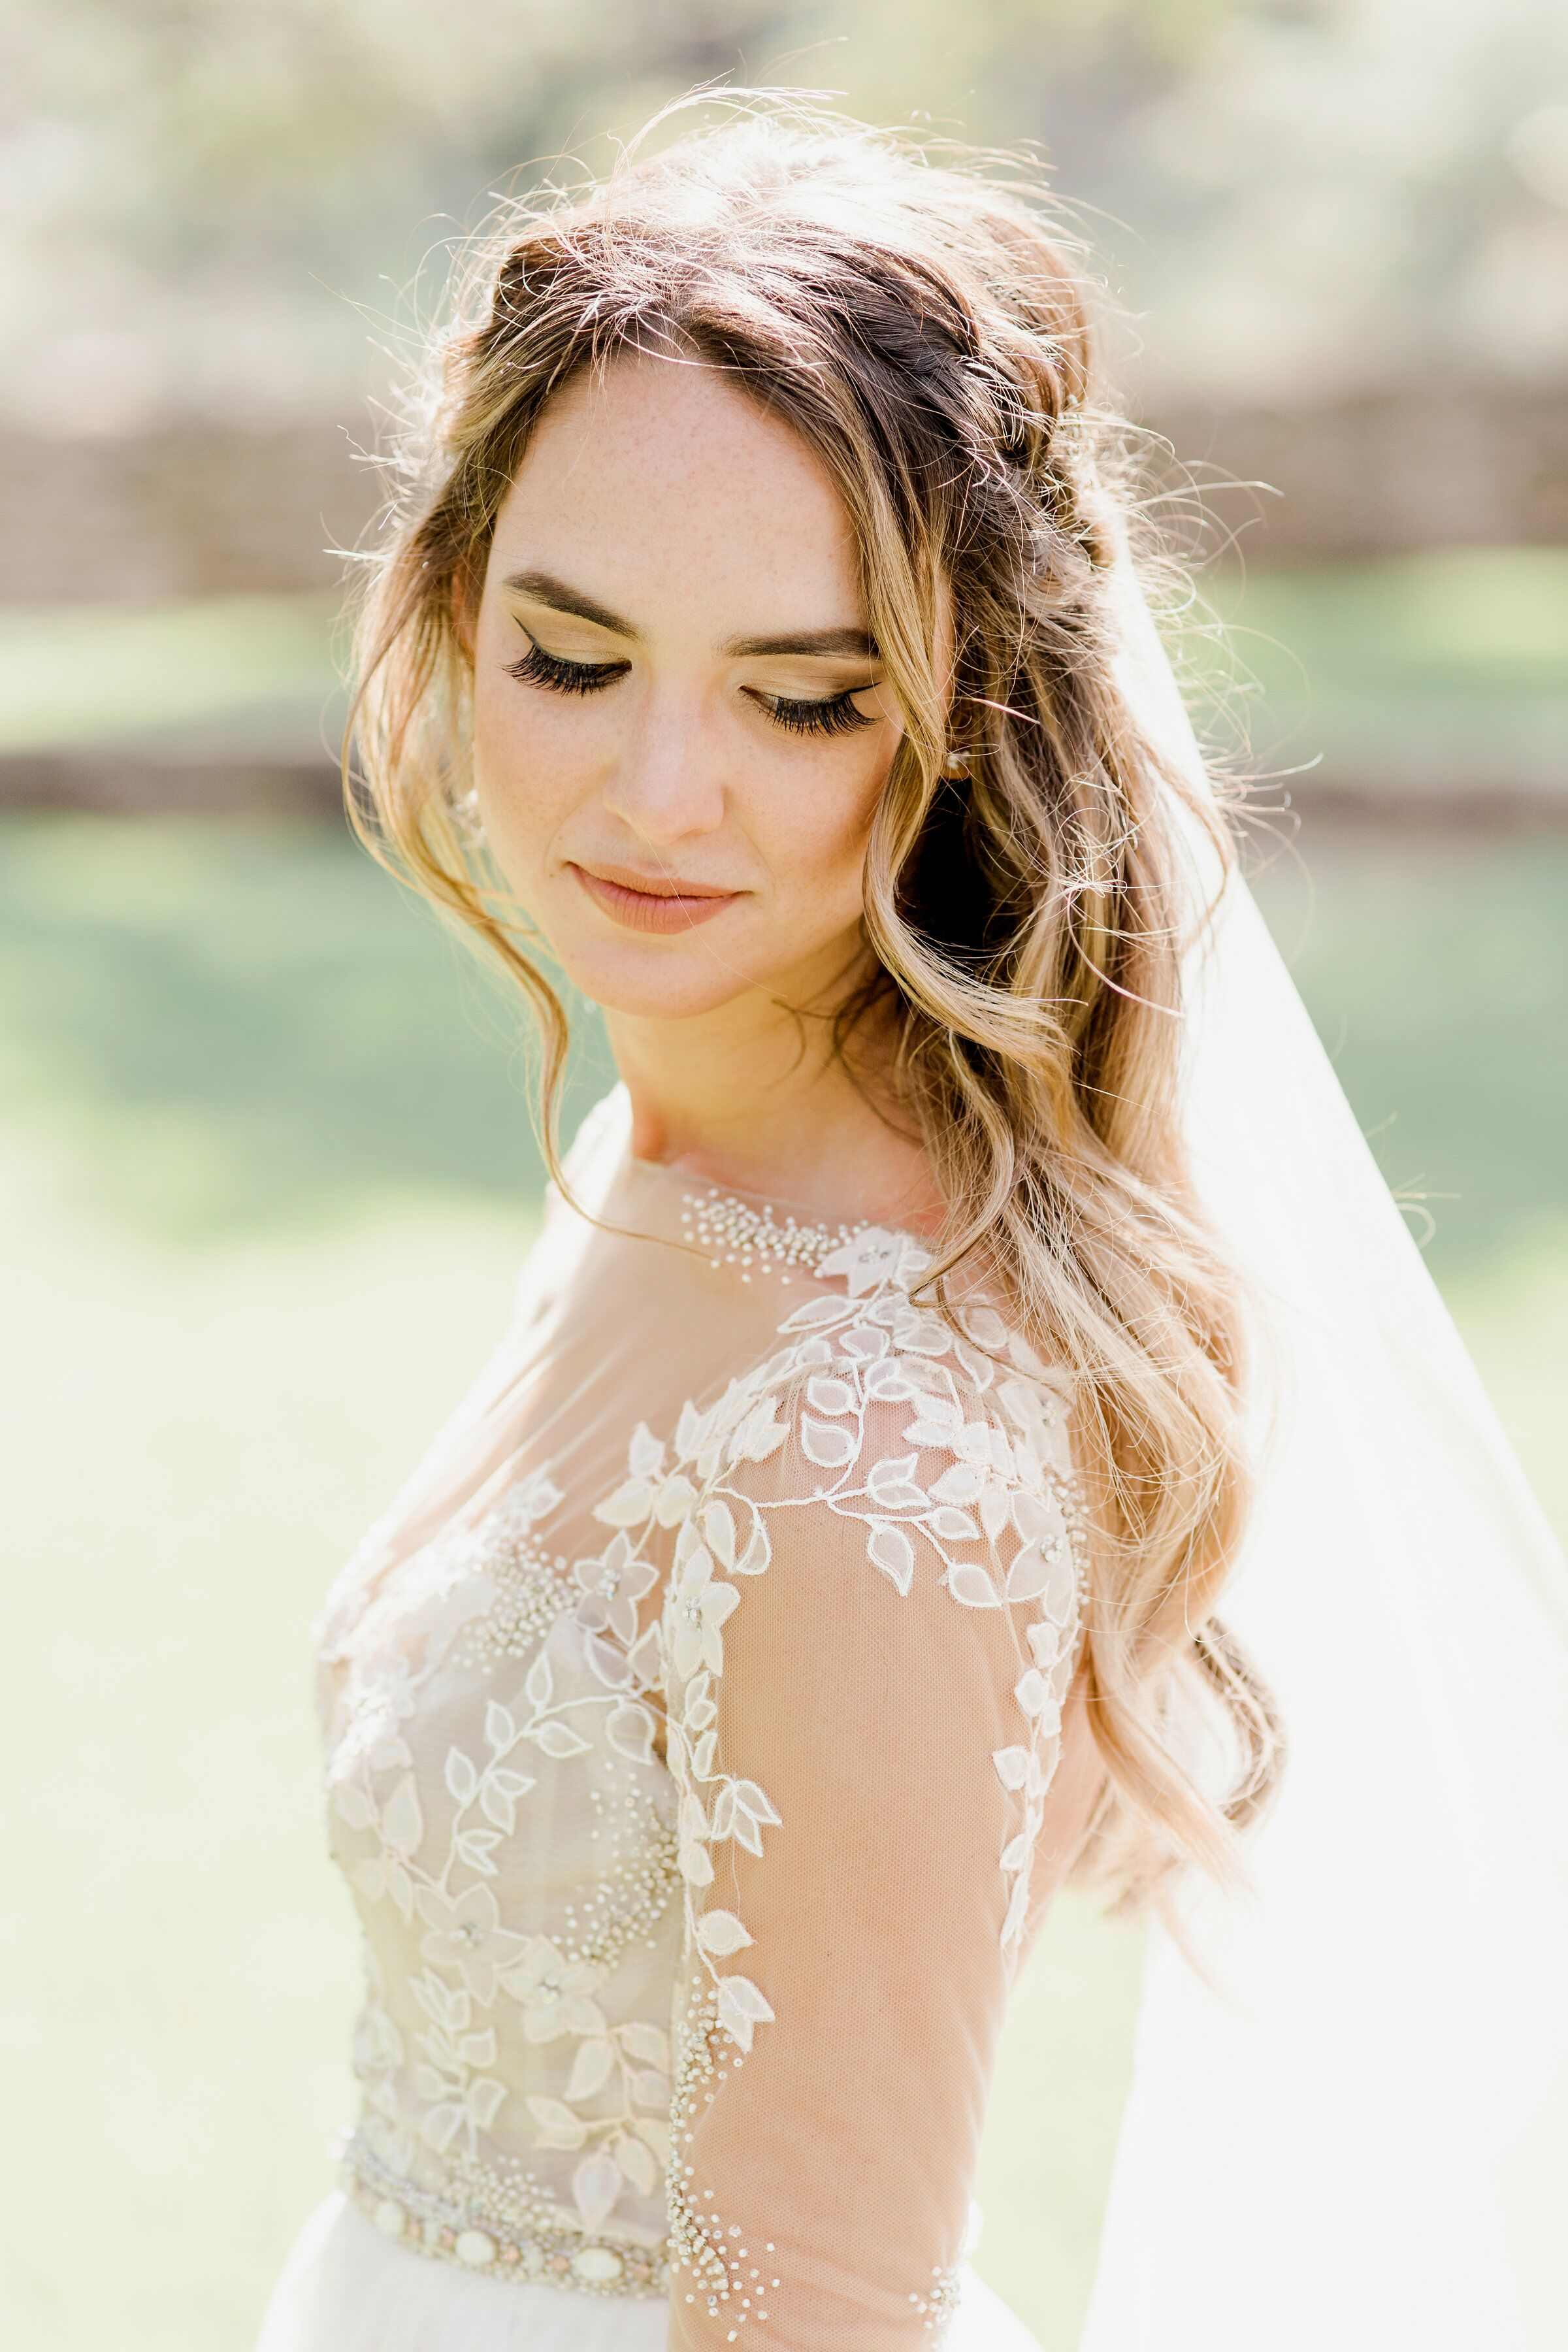 beauty salons in dripping springs, tx - the knot